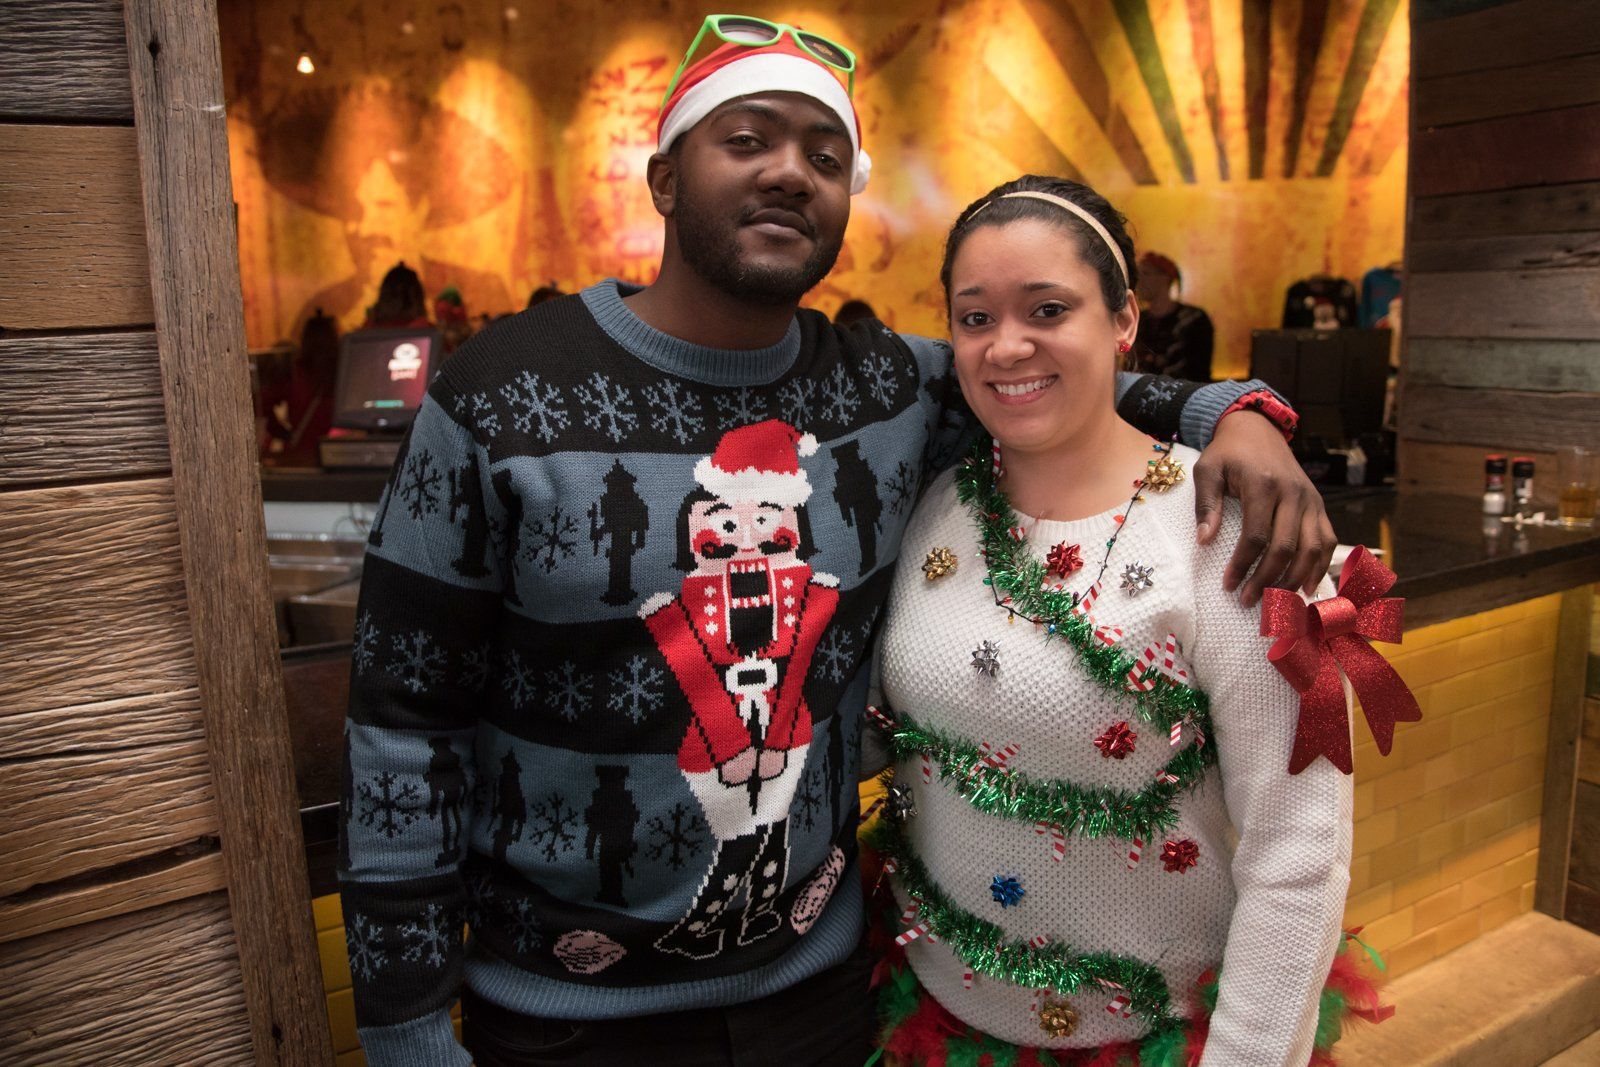 Ugly sweaters are getting their day today | News